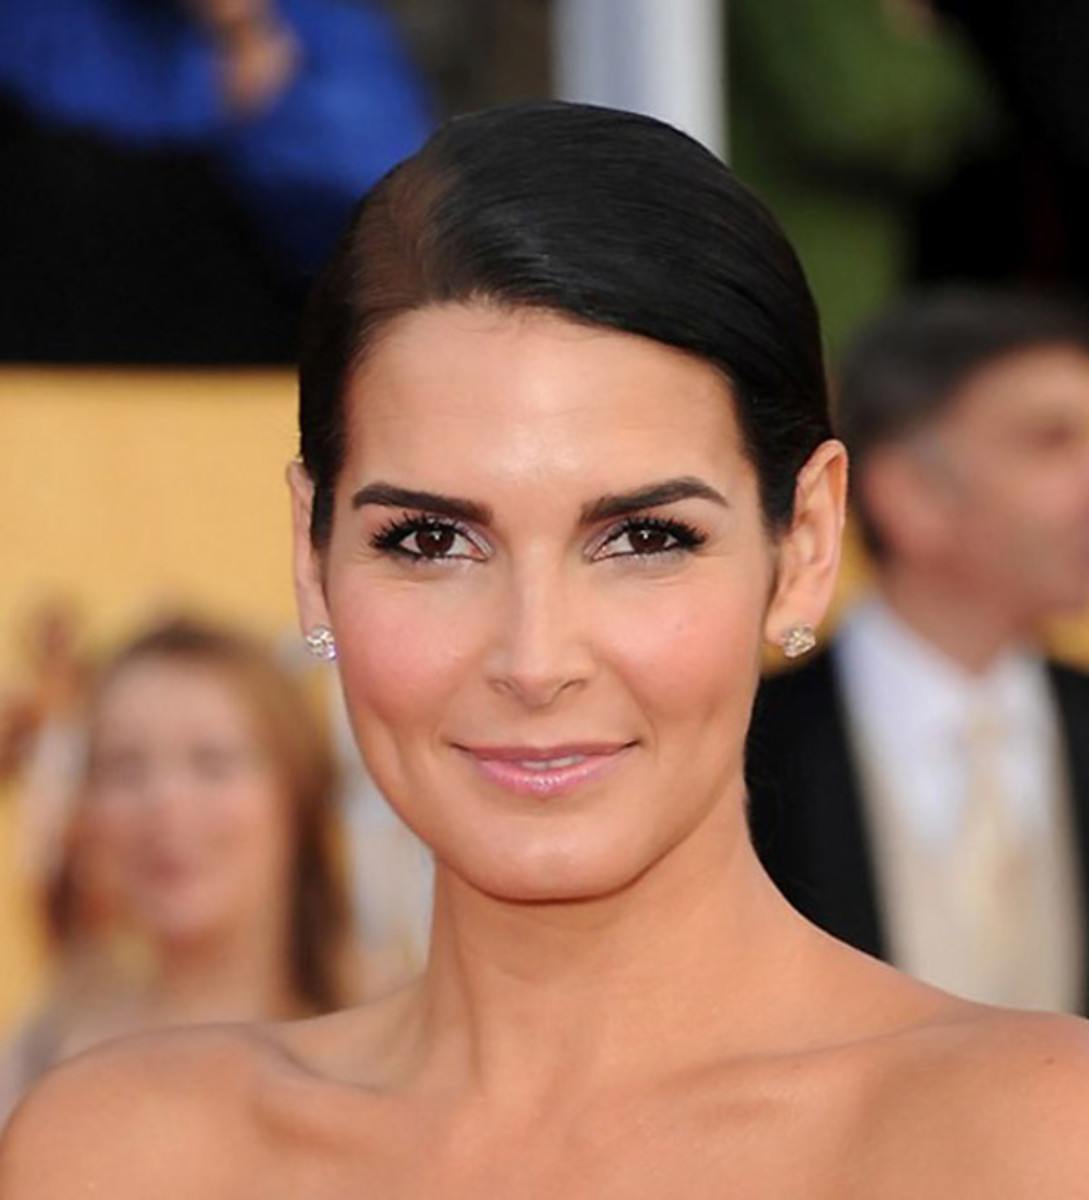 How to avoid hot roots when colouring your hair_ANGIE HARMON_imabeautygeek.com